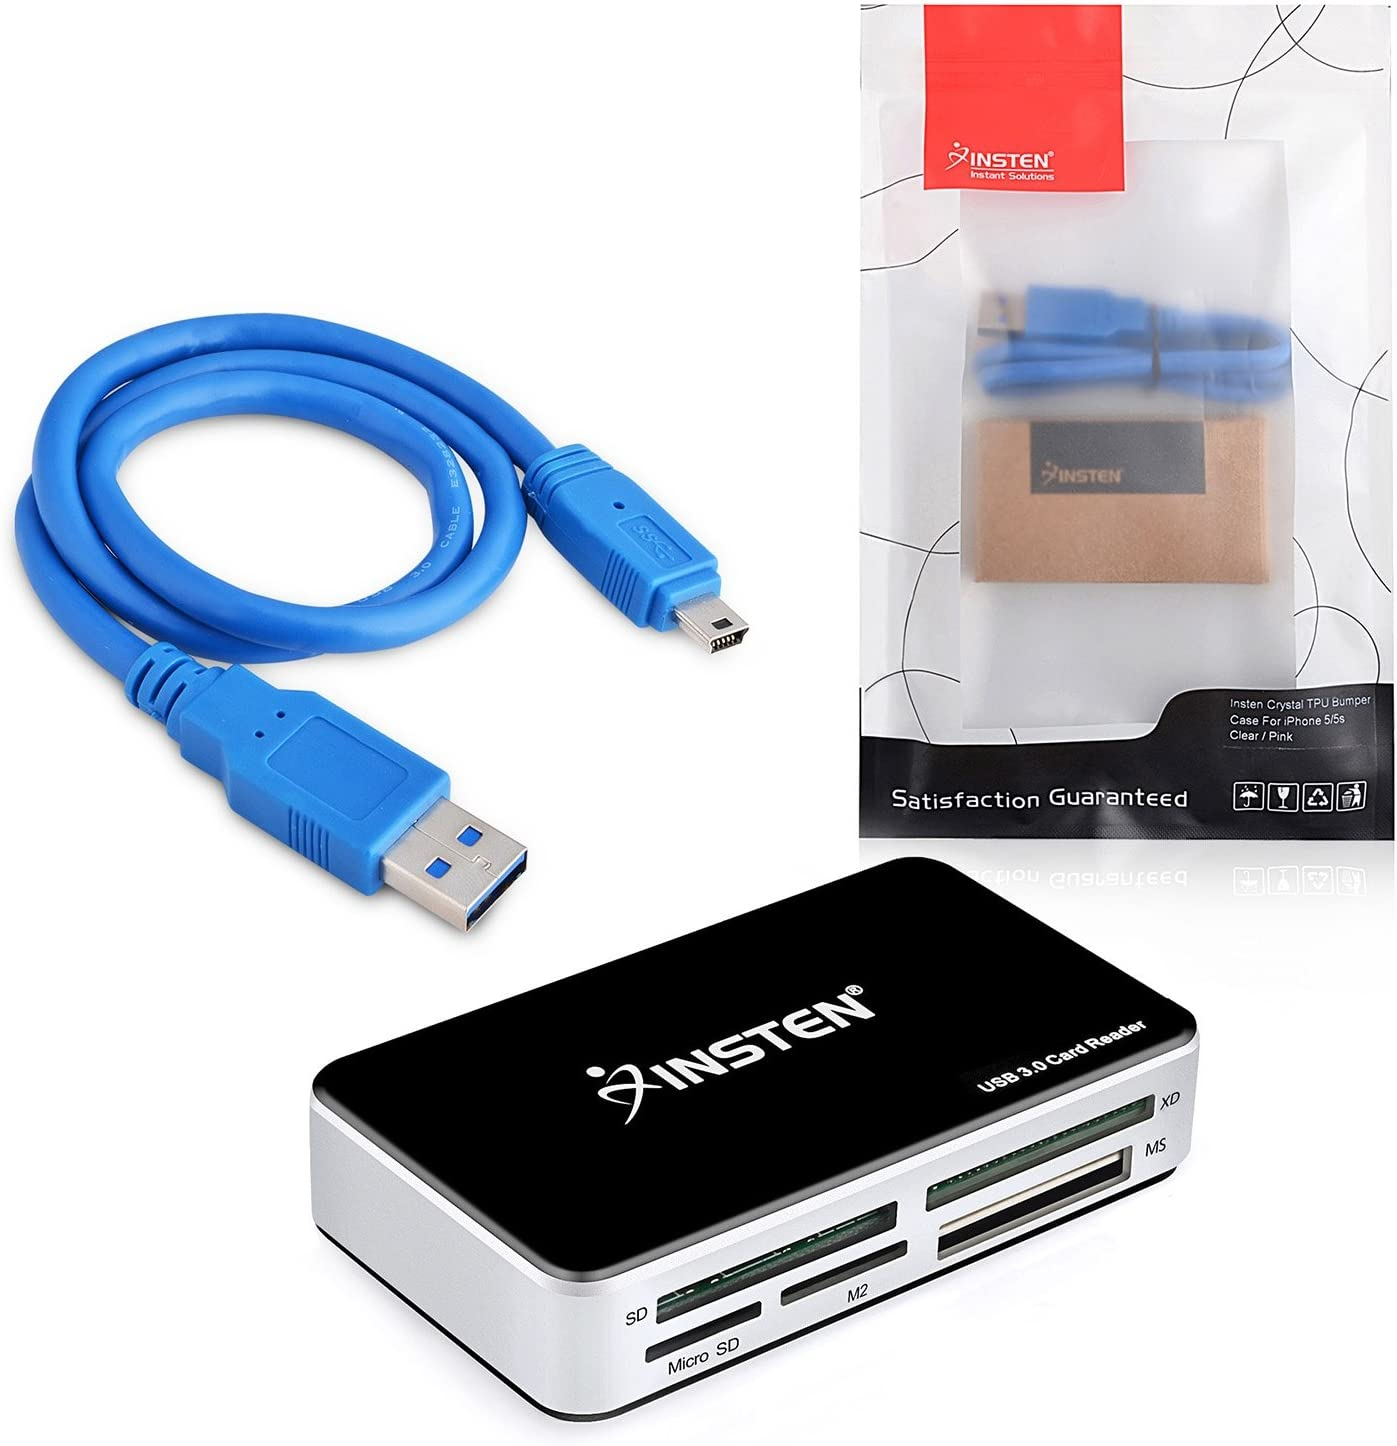 SanFlash PRO USB 3.0 Card Reader Works for Alcatel OneTouch Idol Mini Adapter to Directly Read at 5Gbps Your MicroSDHC MicroSDXC Cards